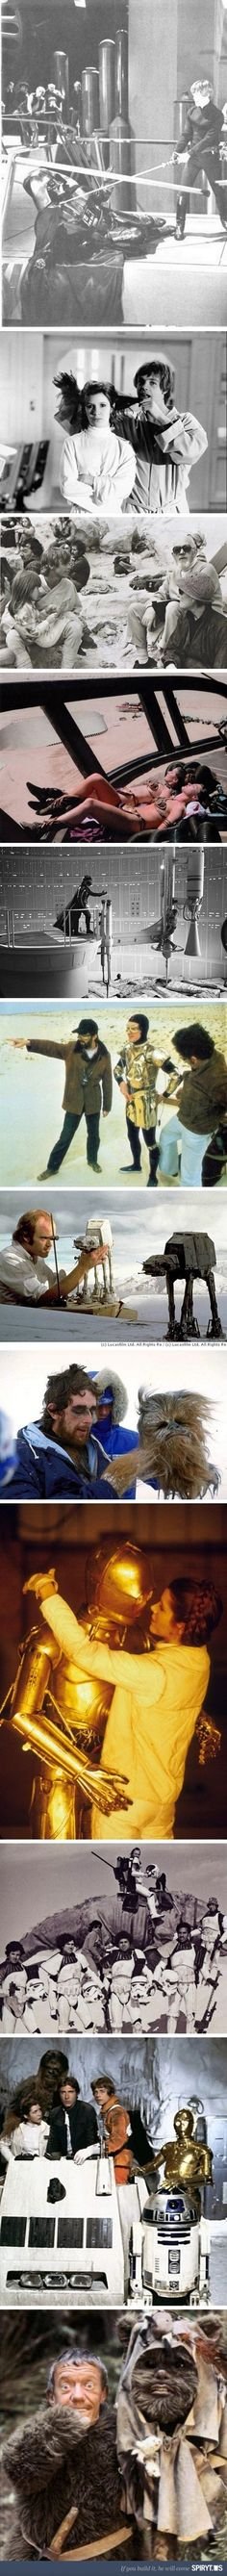 Great behind-the-scenes Star Wars shots